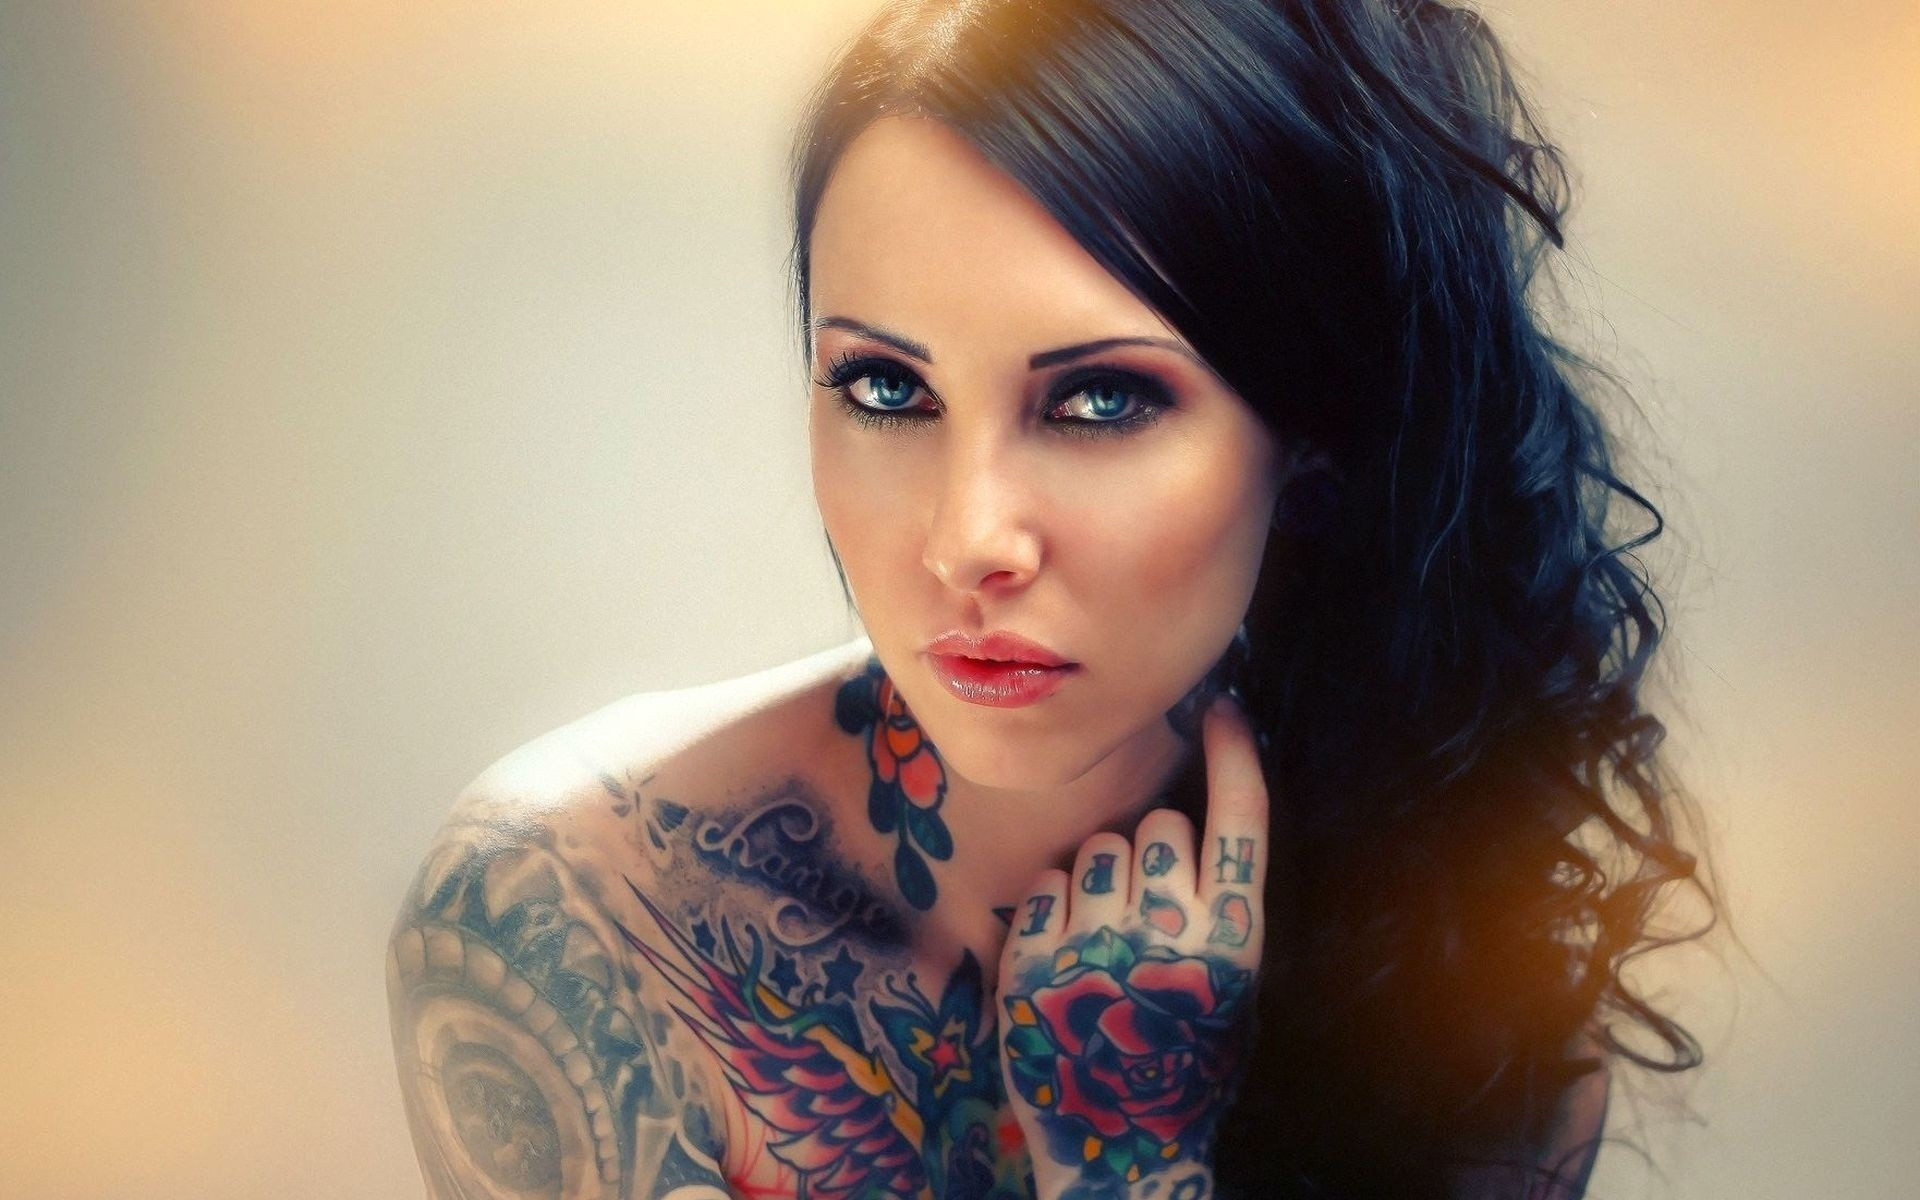 Wallpapers, Woman, Awesome, Tattoo, Desktop, Paste, Wallpaper, Girl Wallpaper